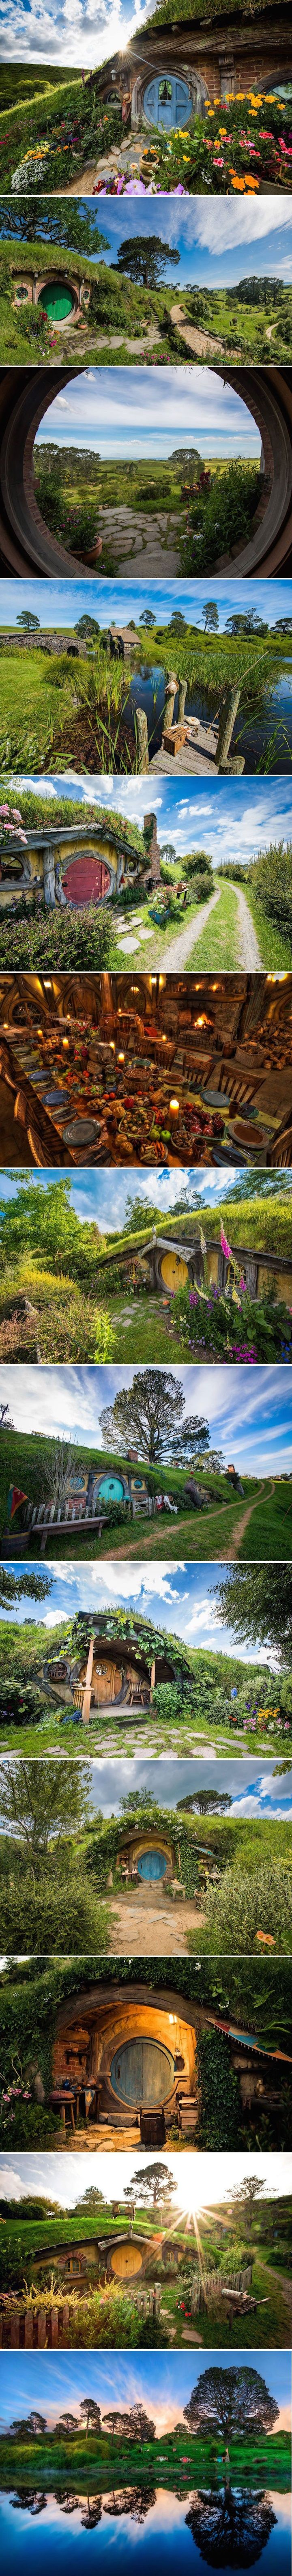 Hobbiton Movie Set is a Real Life Version of Middle-Earth - by Trey Ratcliff